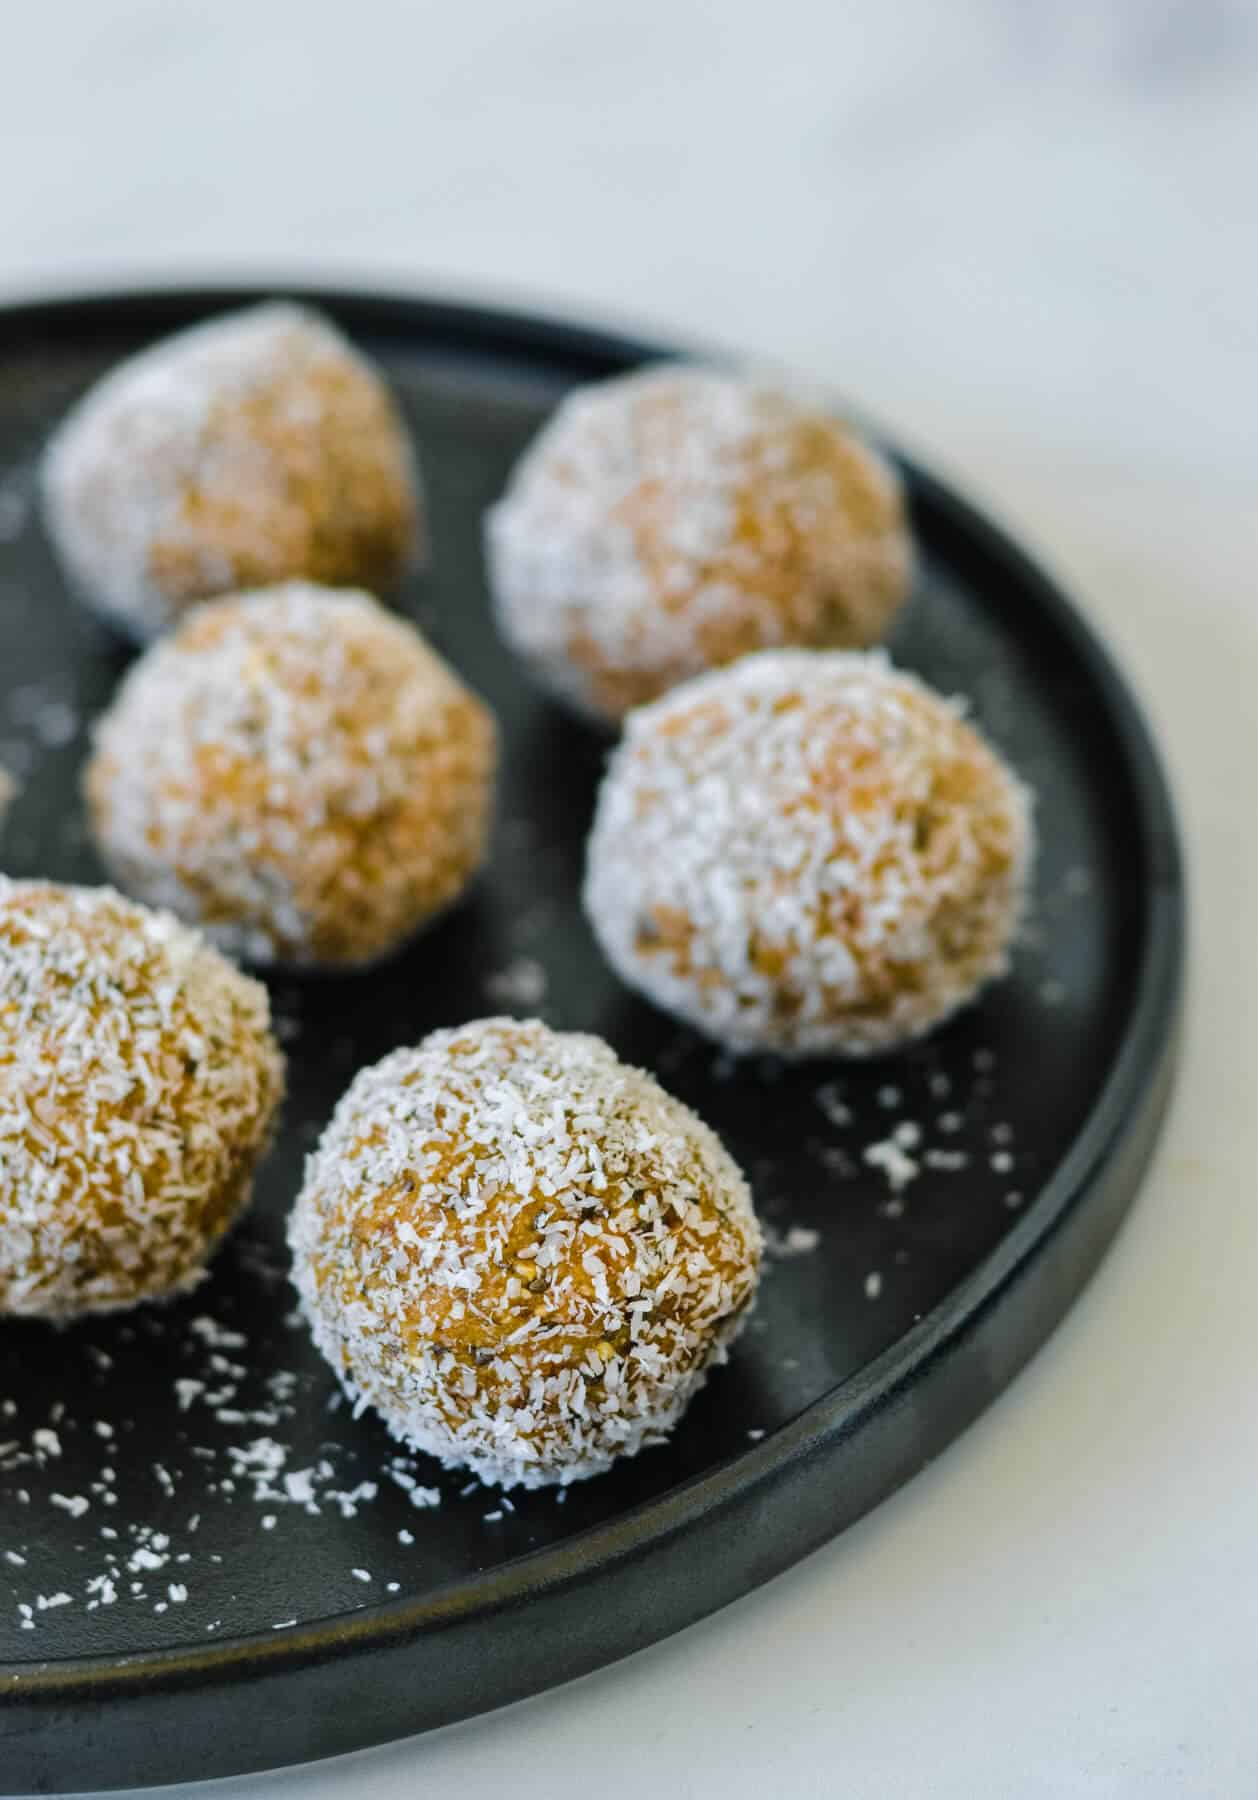 black plate with caramel bliss balls coated in coconut